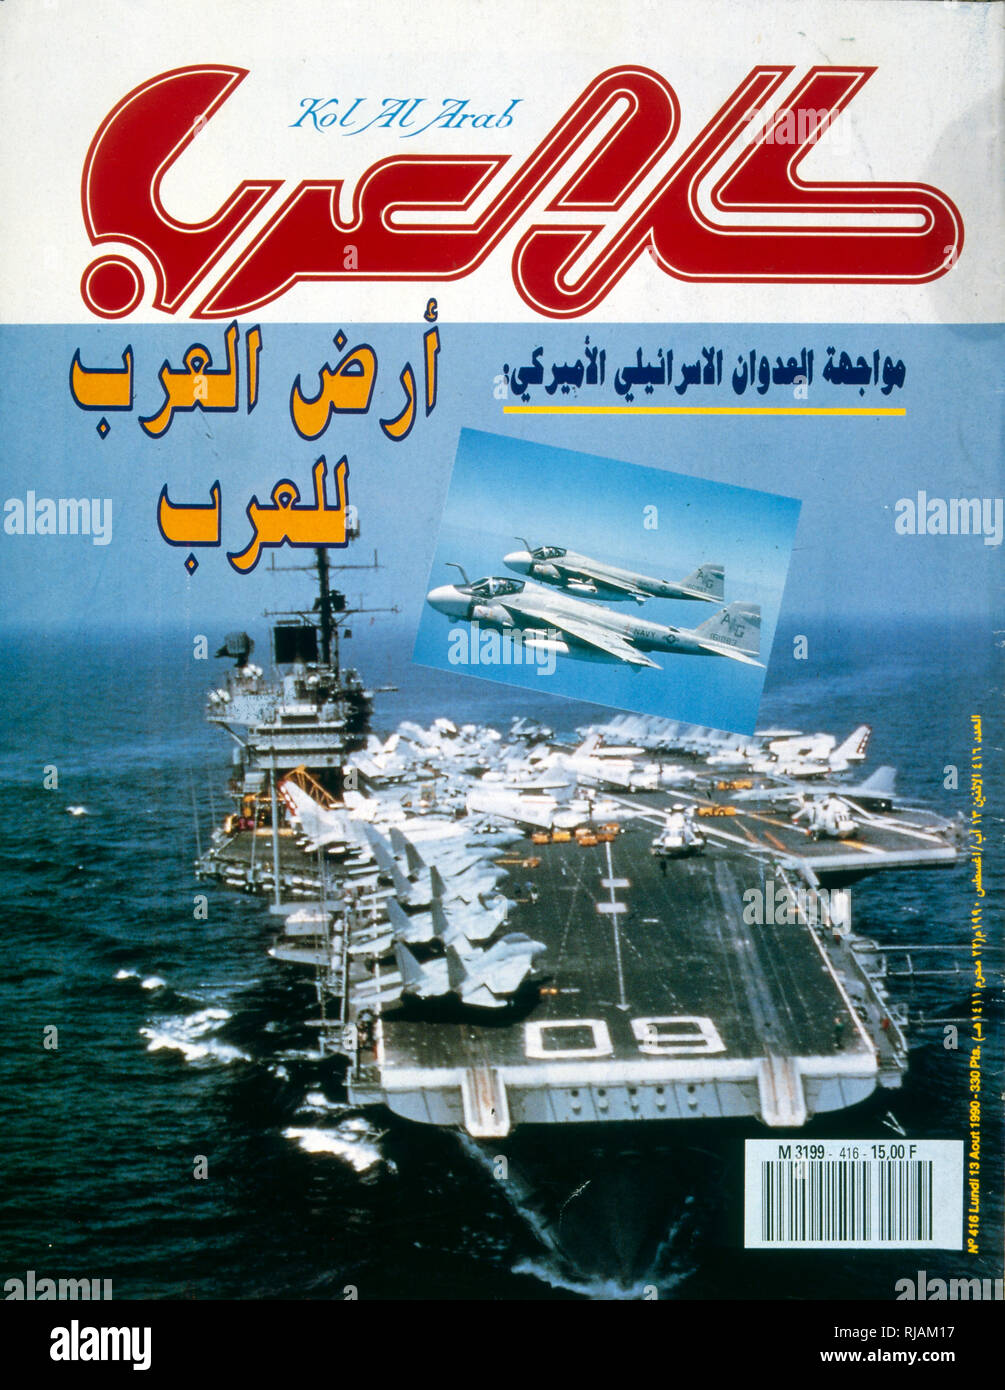 Headline in 'Kol Al Arab'  an Arabic magazine, in August 1990, showing the build up of American naval forces in the Arabian gulf during the 1990-91 Gulf War - Stock Image